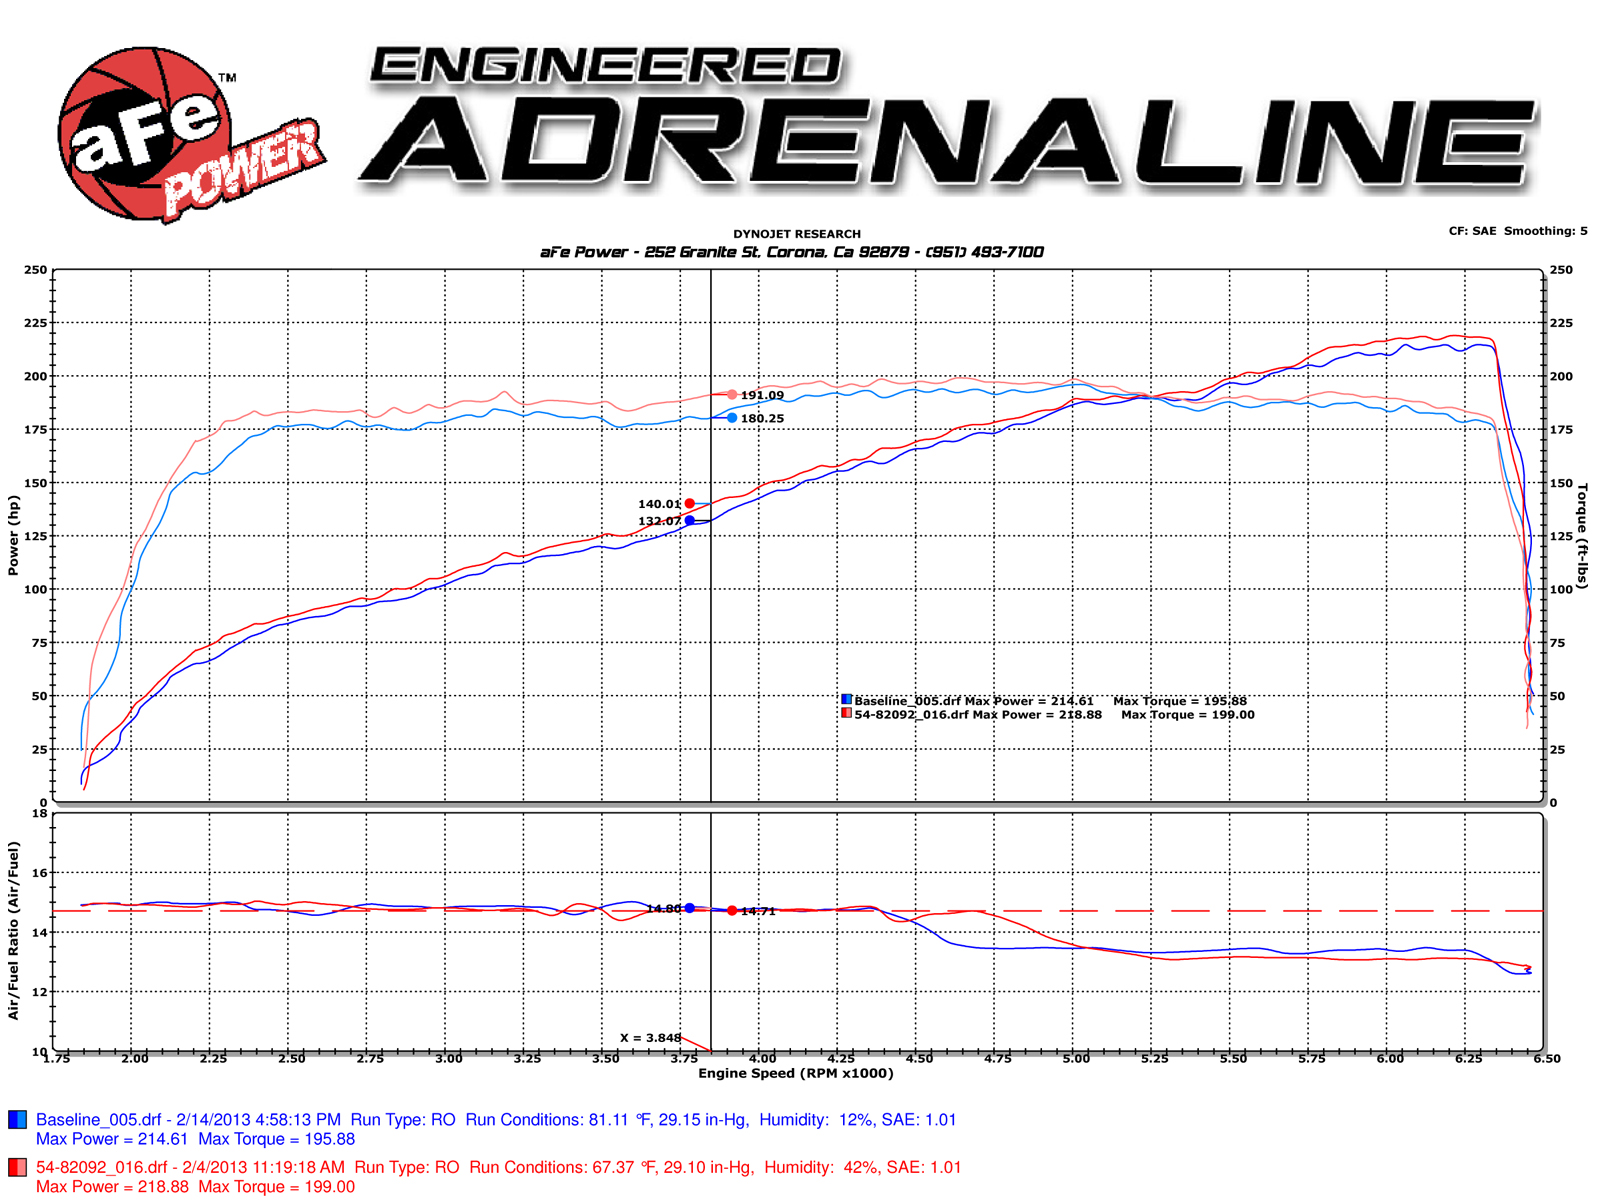 Momentum Gt Pro 5r Cold Air Intake System Afe Power Jeep Yj Engine Block Diagram Dyno Chart